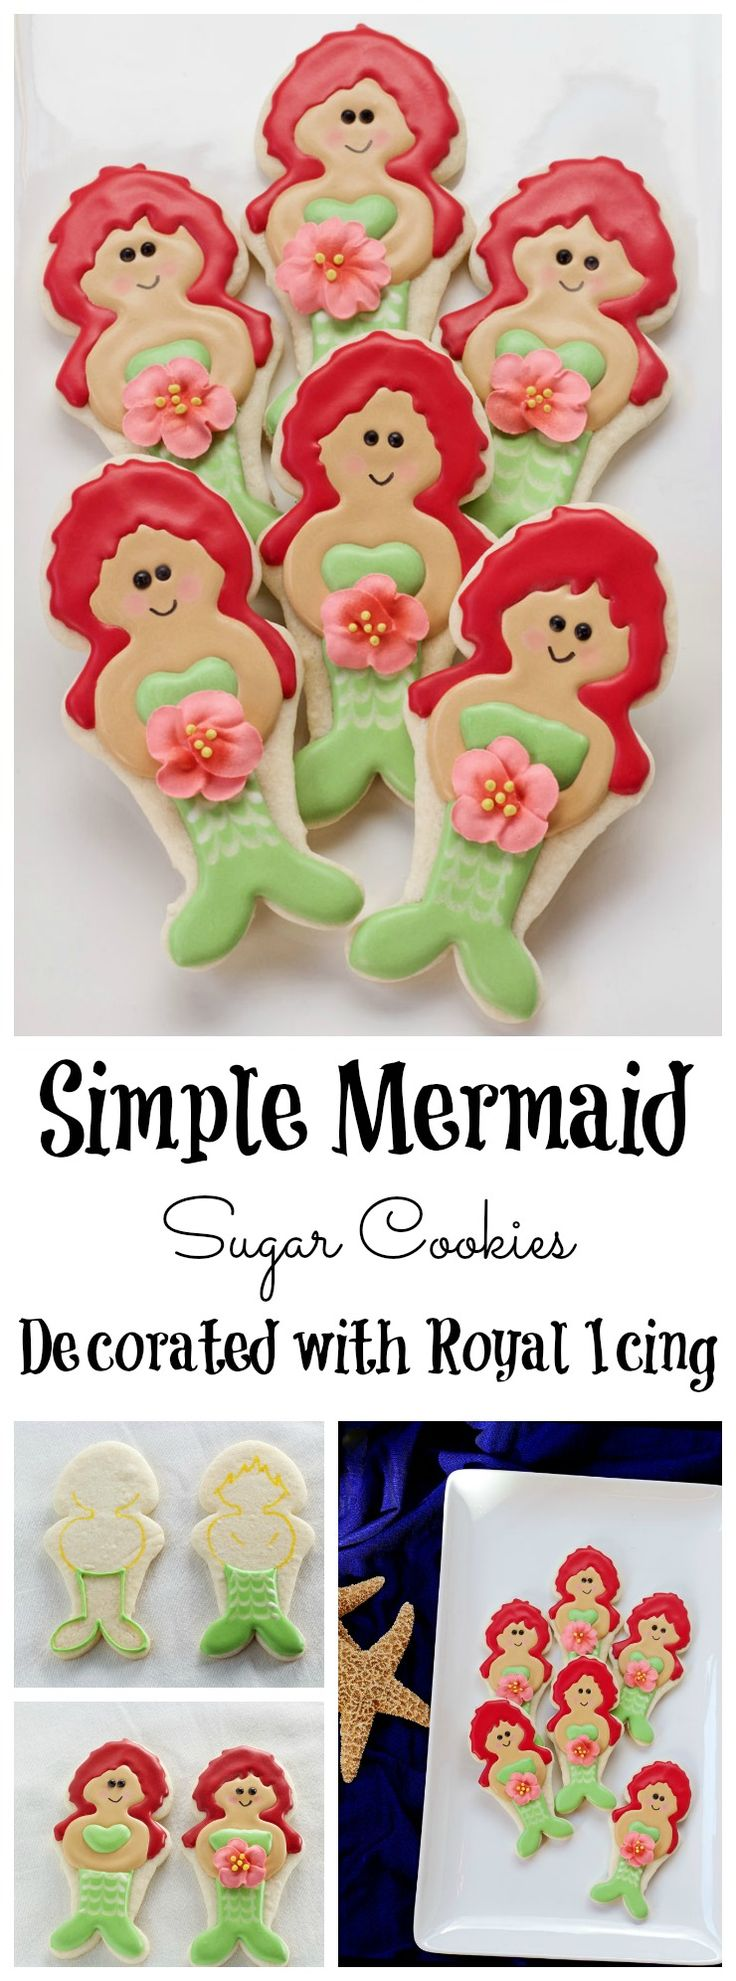 How to Make these Happy Little Mermaid Cookies - Sugar Cookies Decorated with Royal Icing via www.thebearfootbaker.com